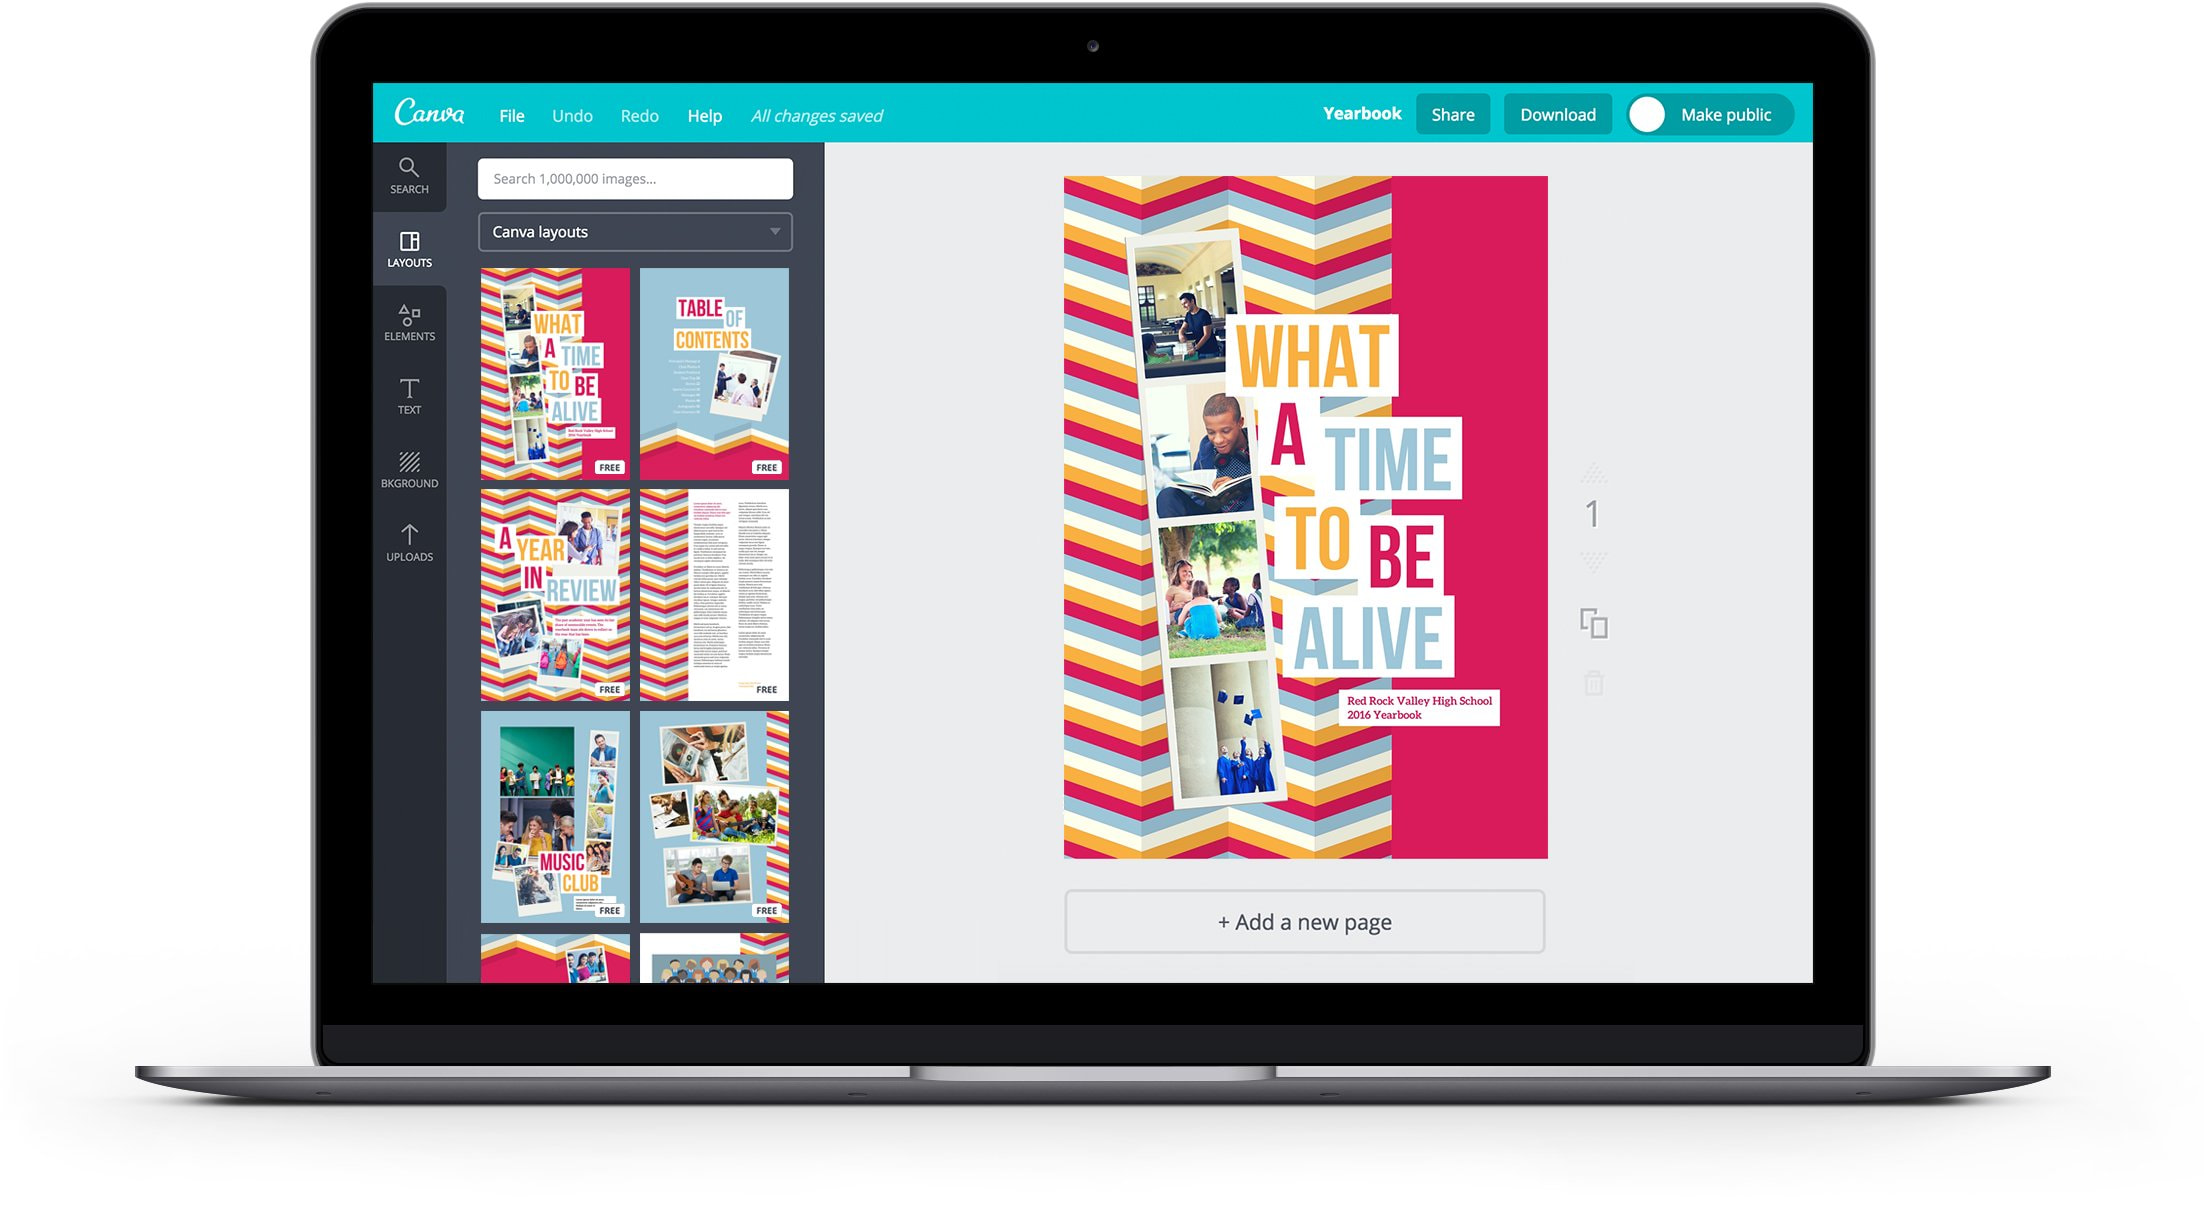 Free Online Yearbook Maker Design A Custom Yearbook In Canva